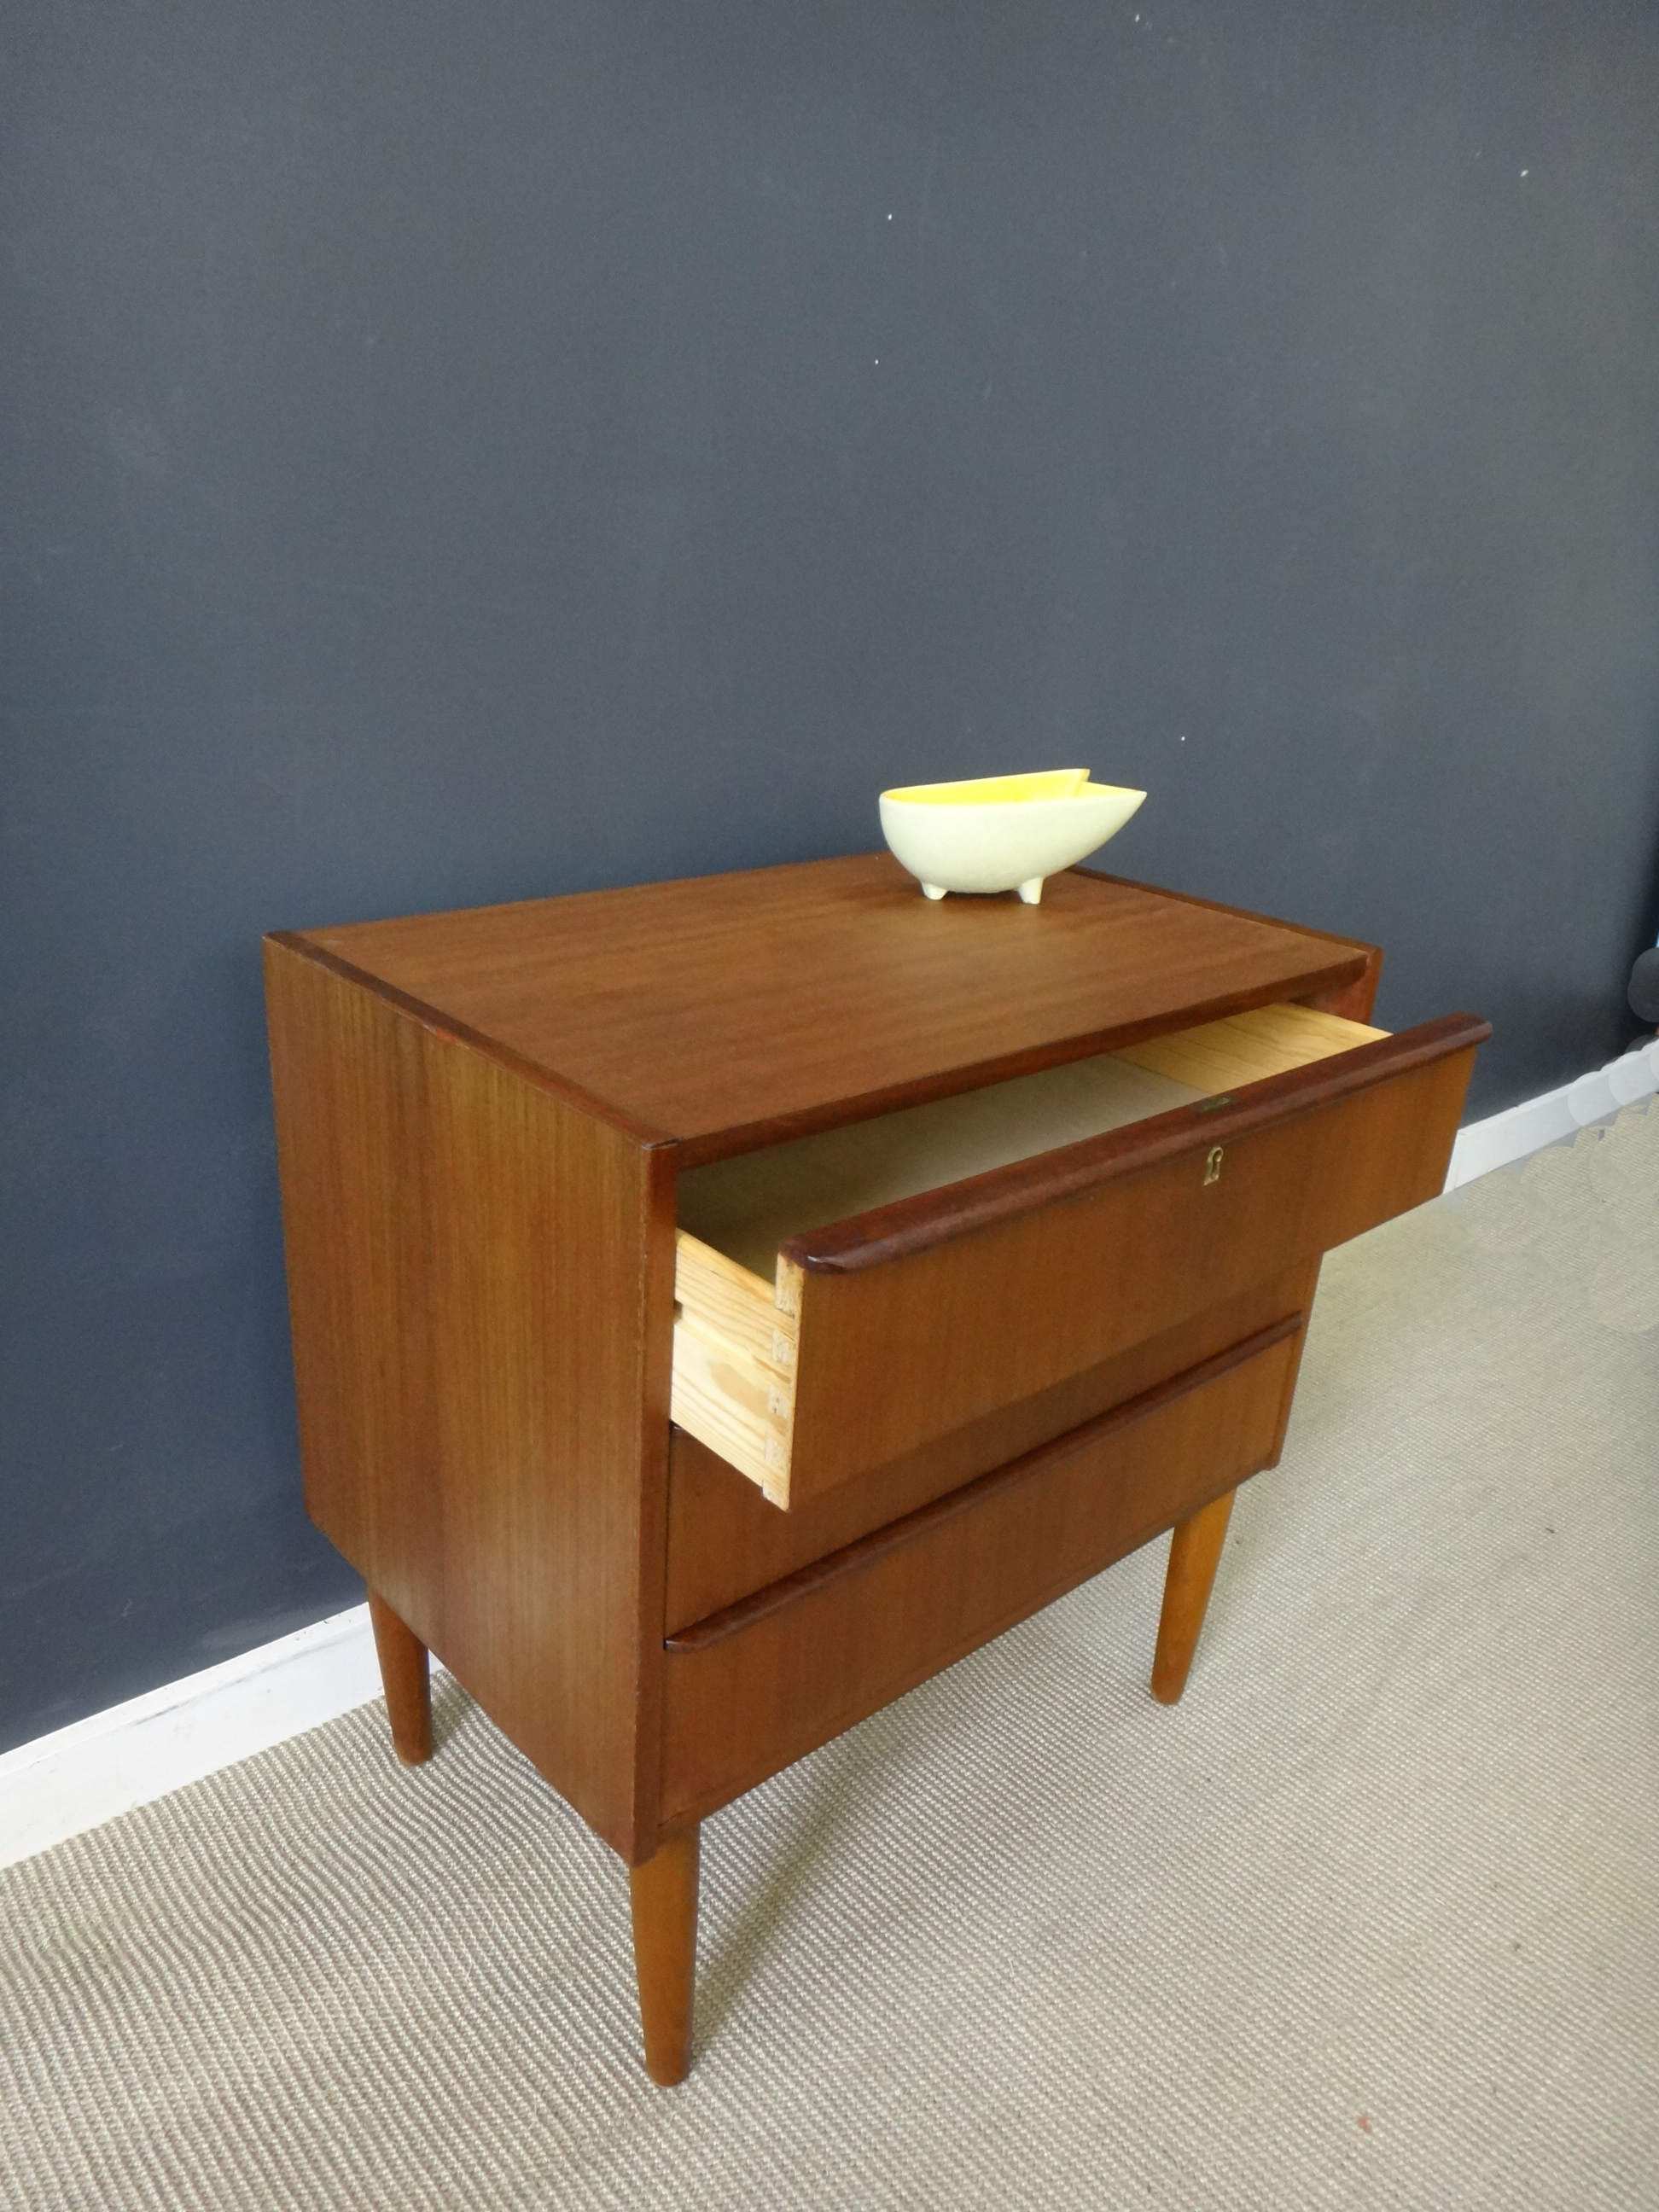 3-Drawer Petite Teak Chest